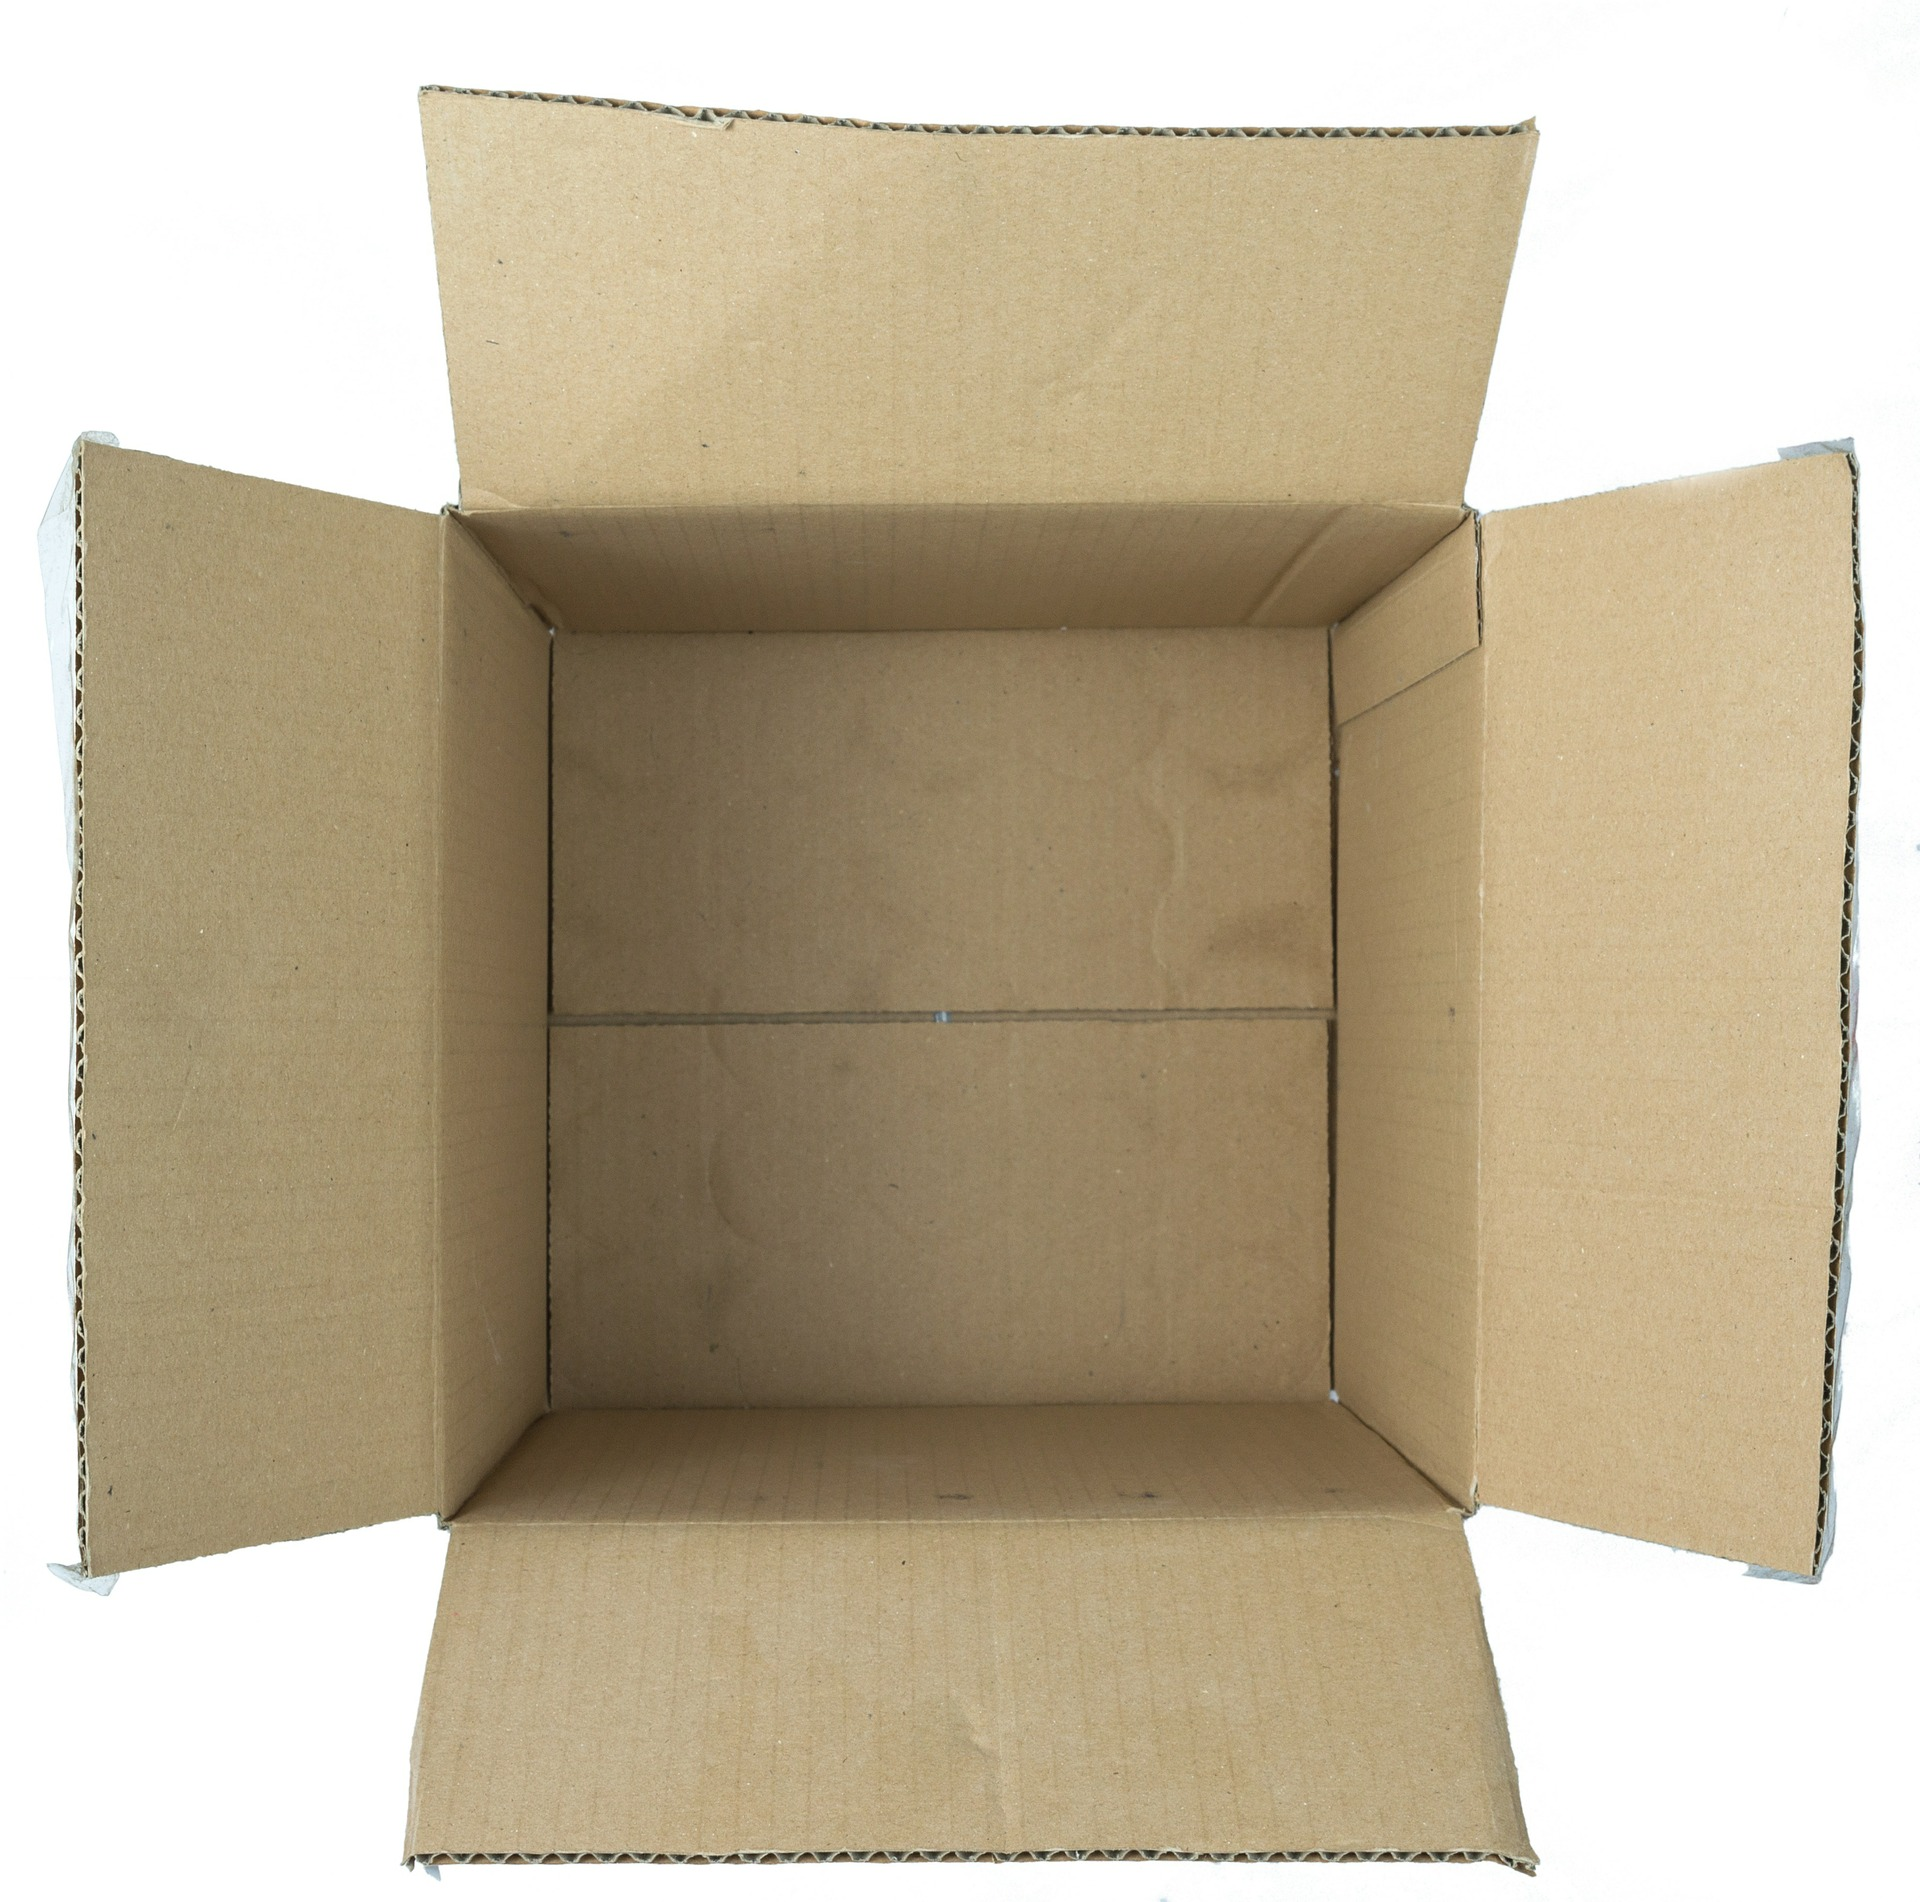 An open cardboard box while unpacking after a PCS move.